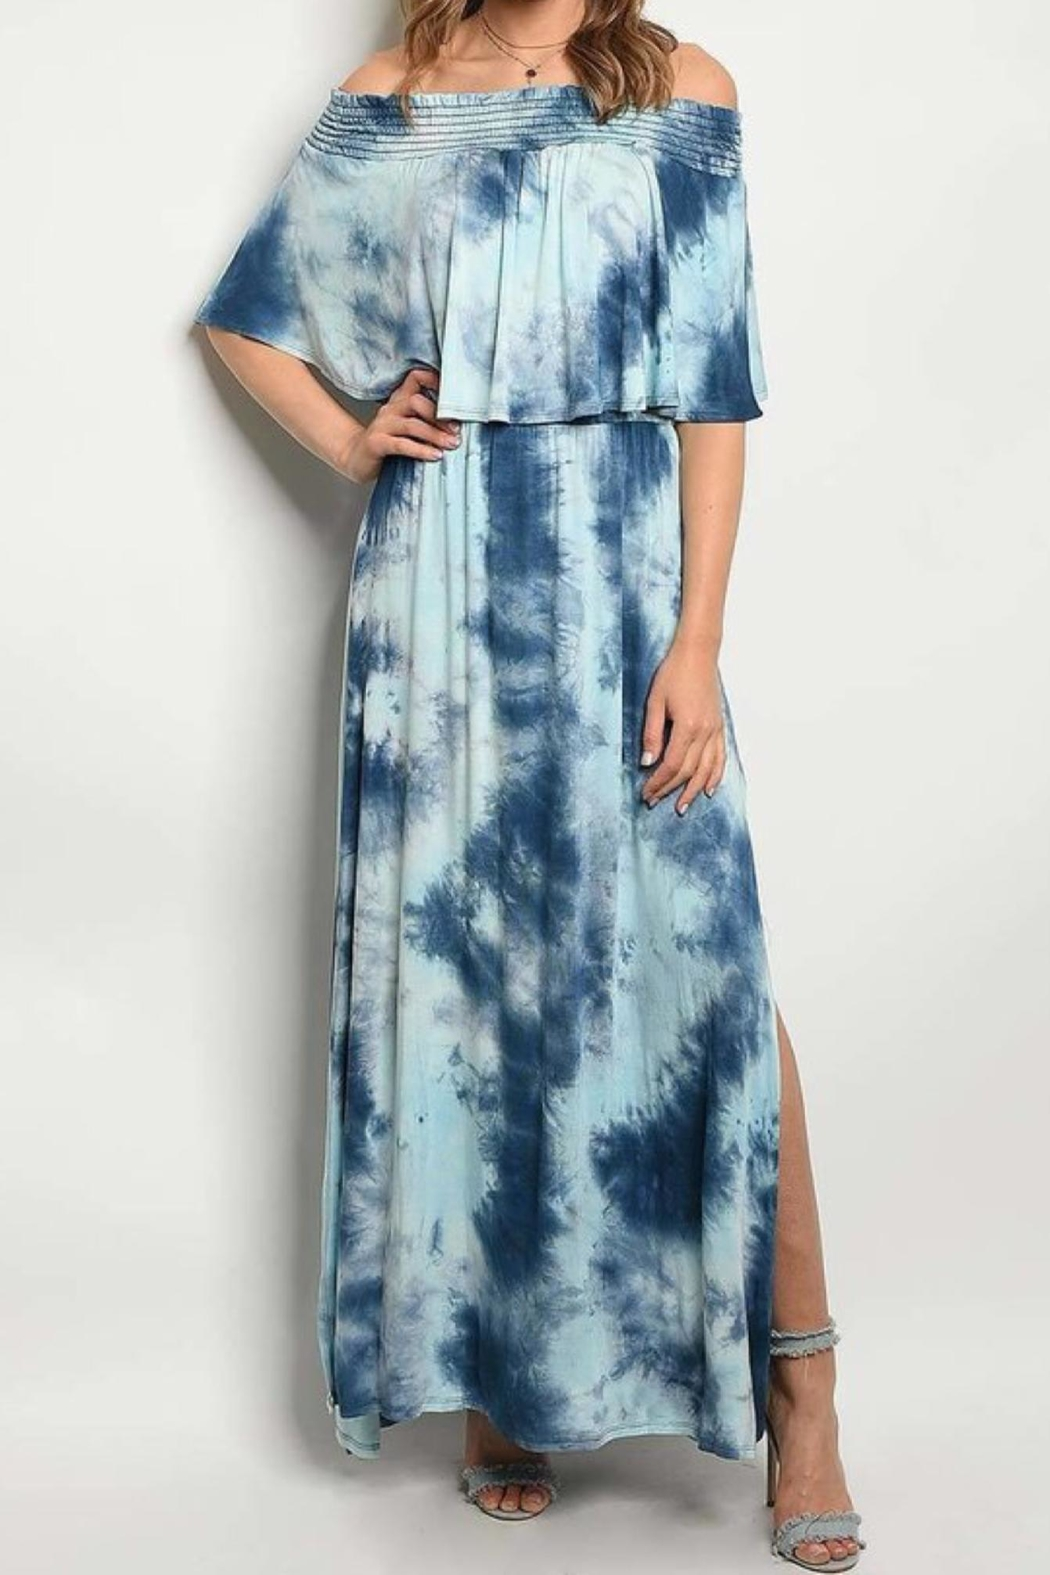 No Label  Tie-Dye Ruffled Dress - Main Image